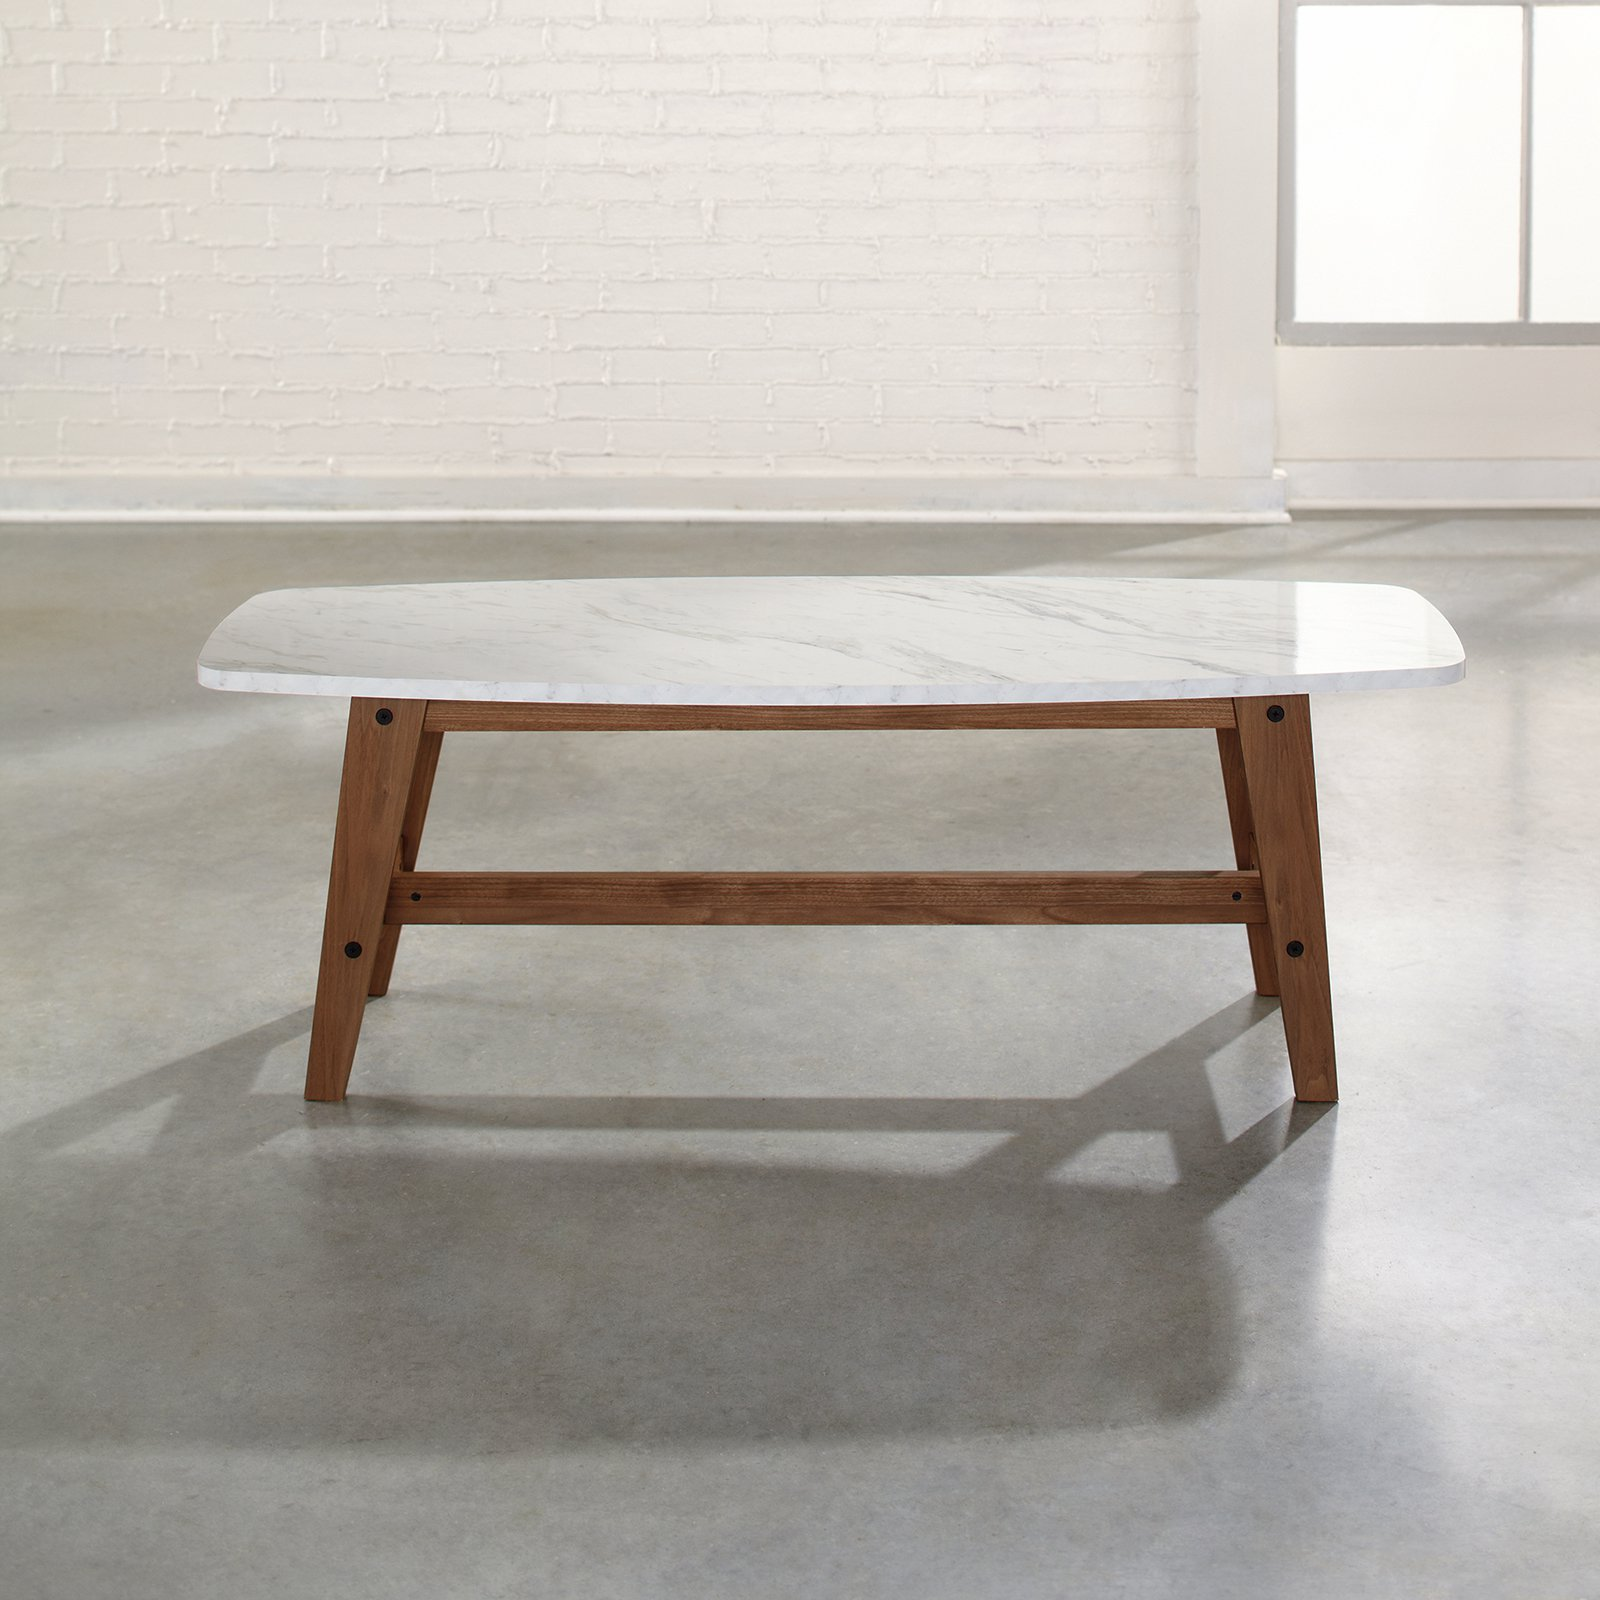 Sauder Soft Modern Coffee Table   Walmart.com